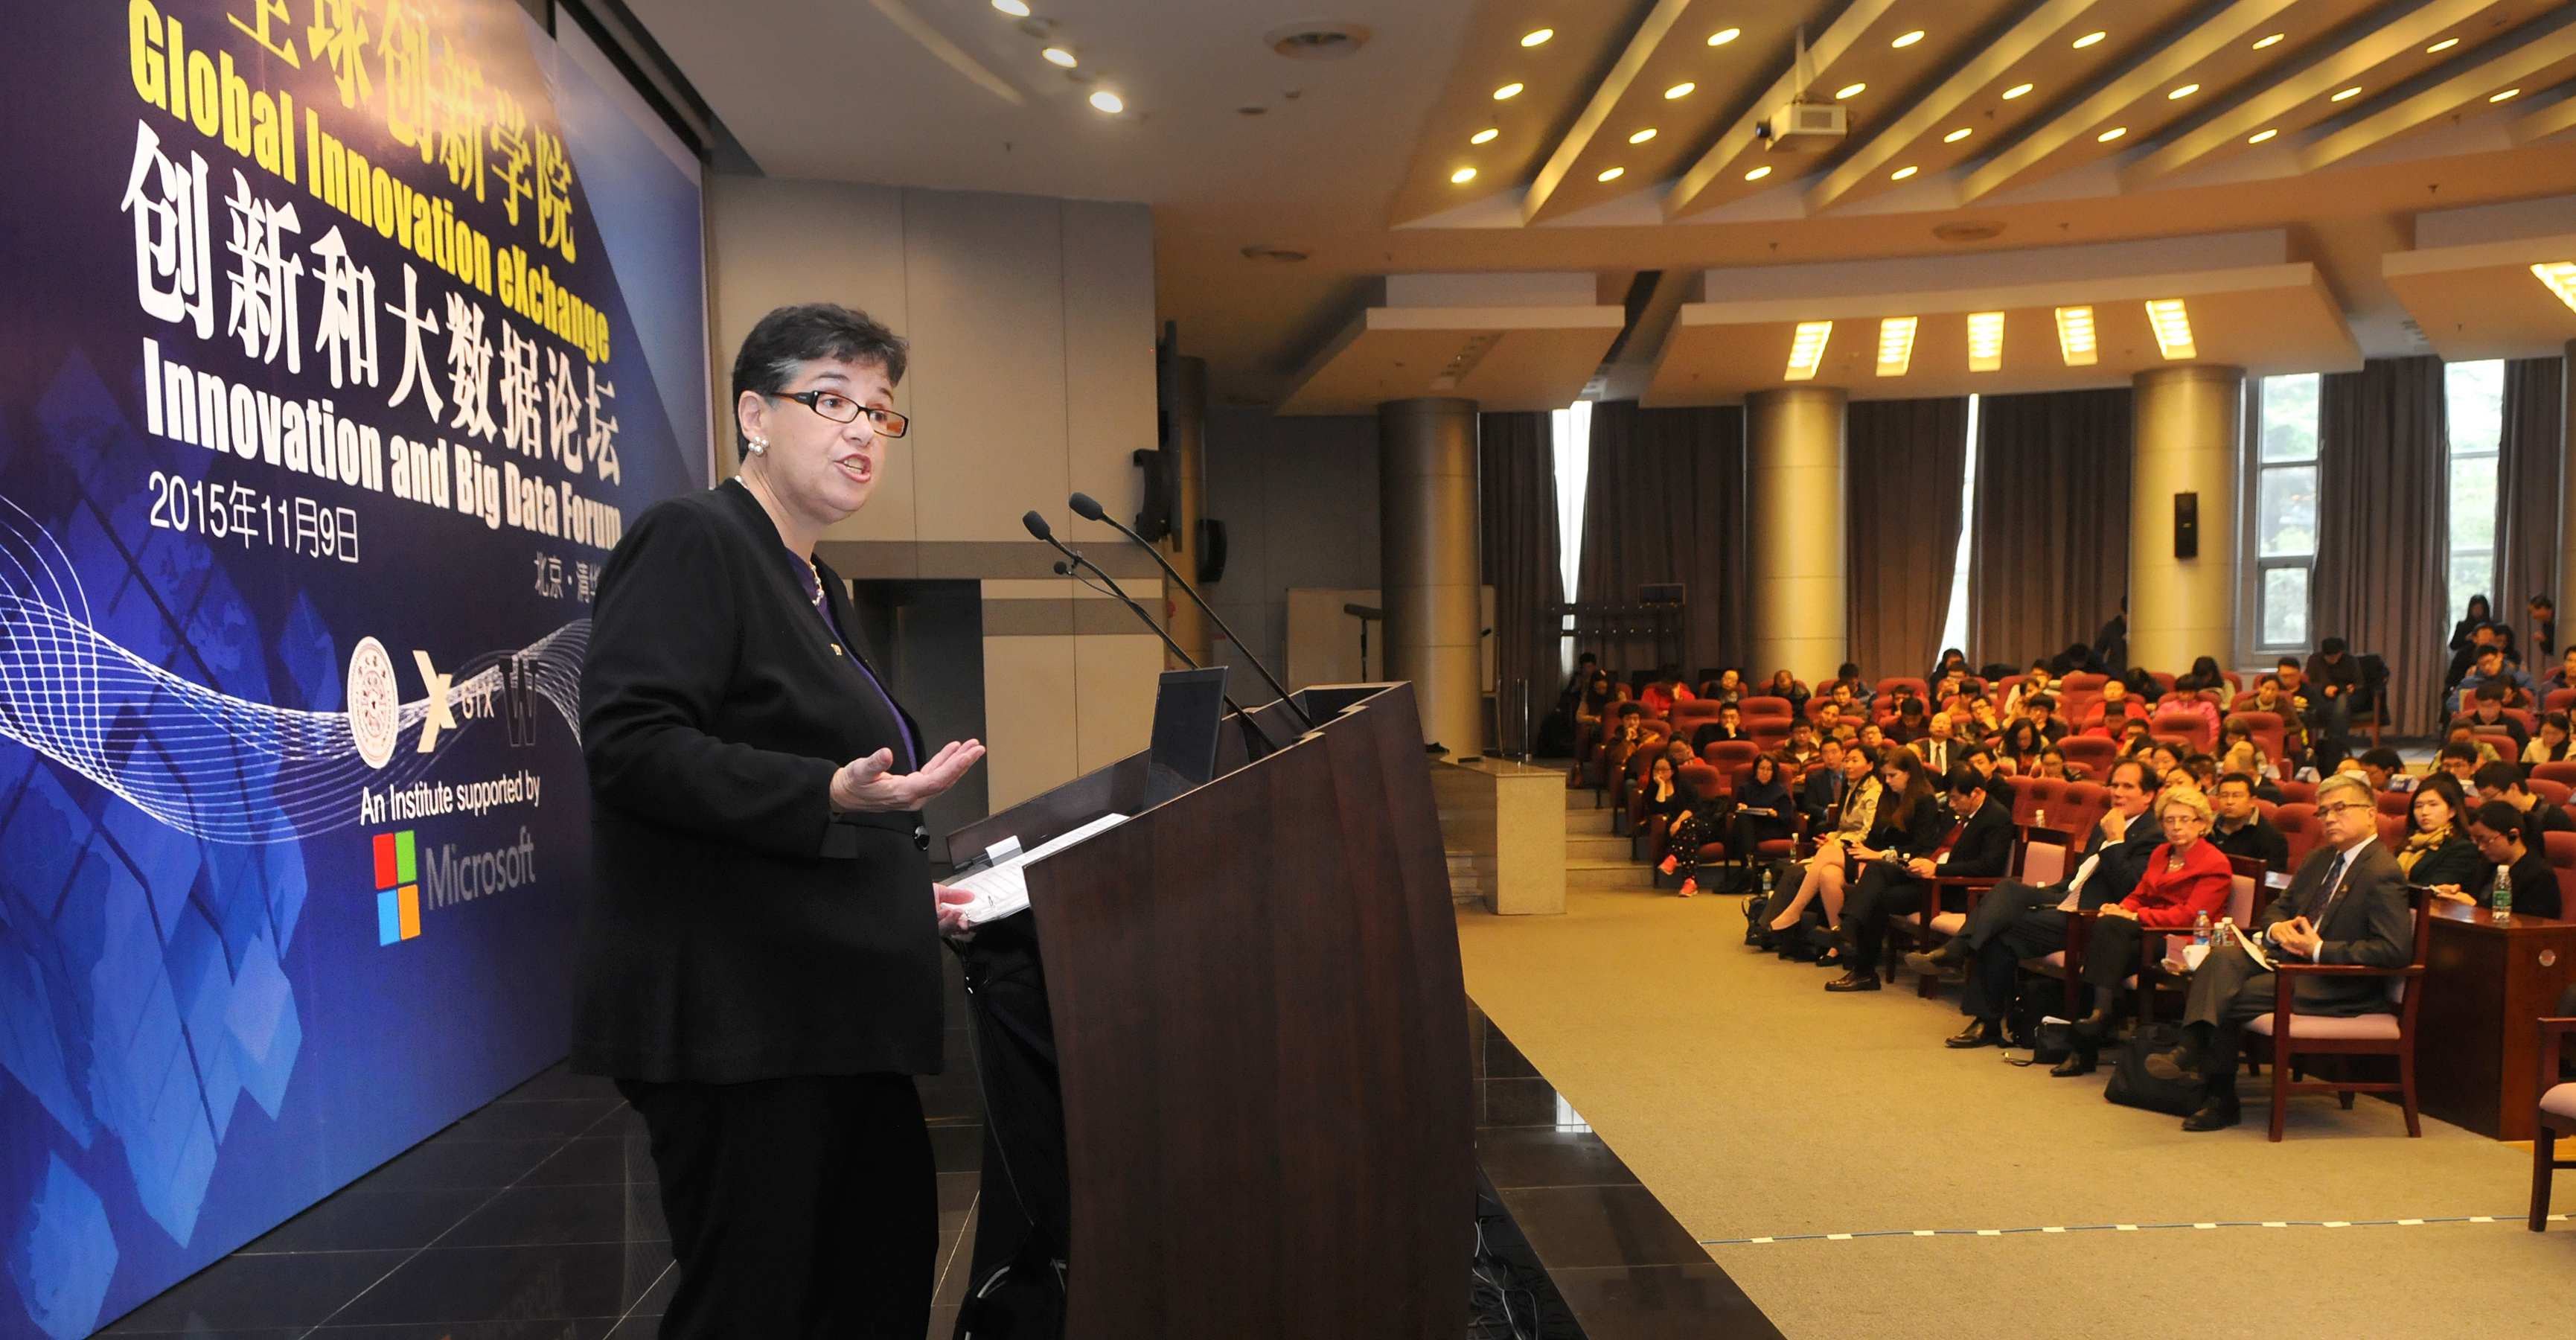 President Ana Mari Cauce gives the keynote address at the Innovation and Big Data Forum